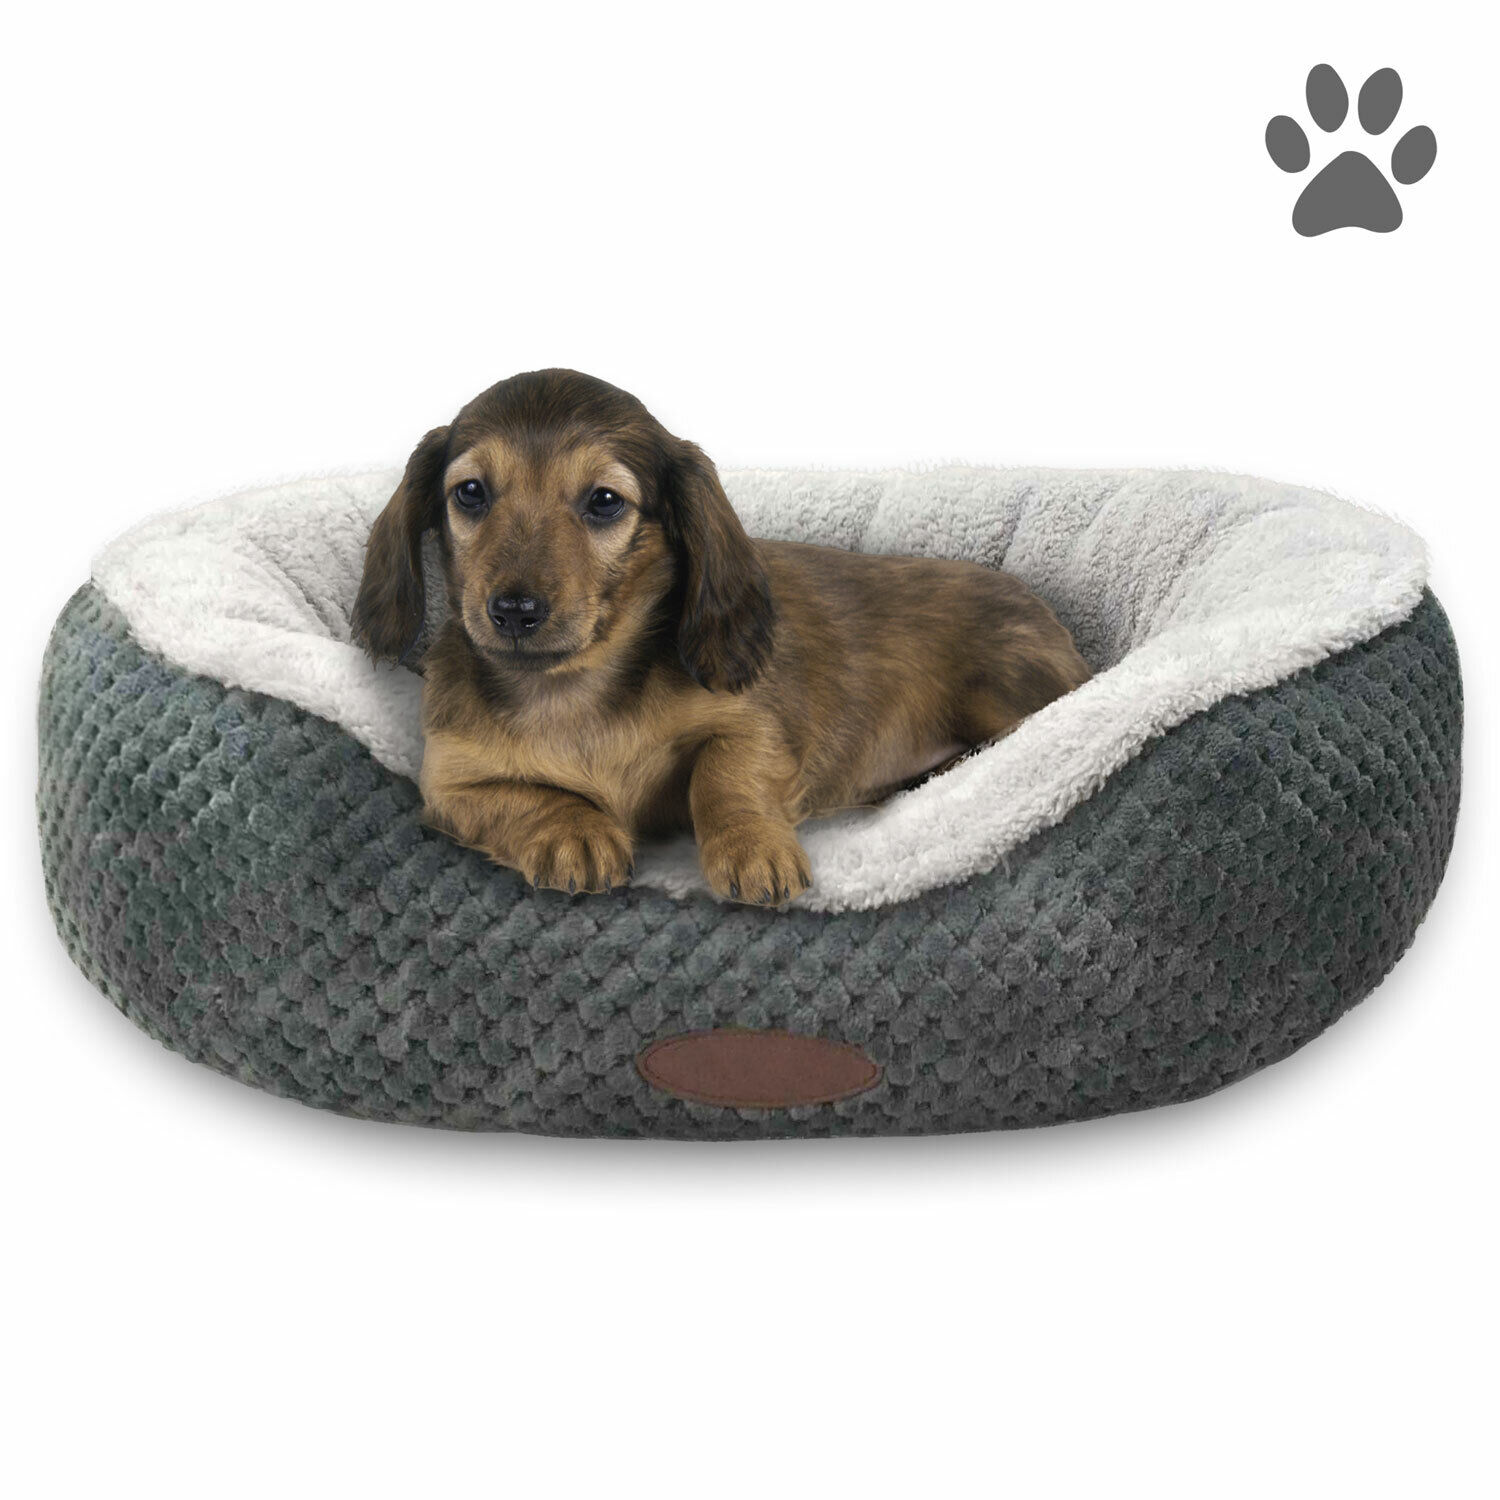 24″ or 28″ Pet Bed Cuddler Small or Medium Washable Grey Microfleece Cozy Soft Beds